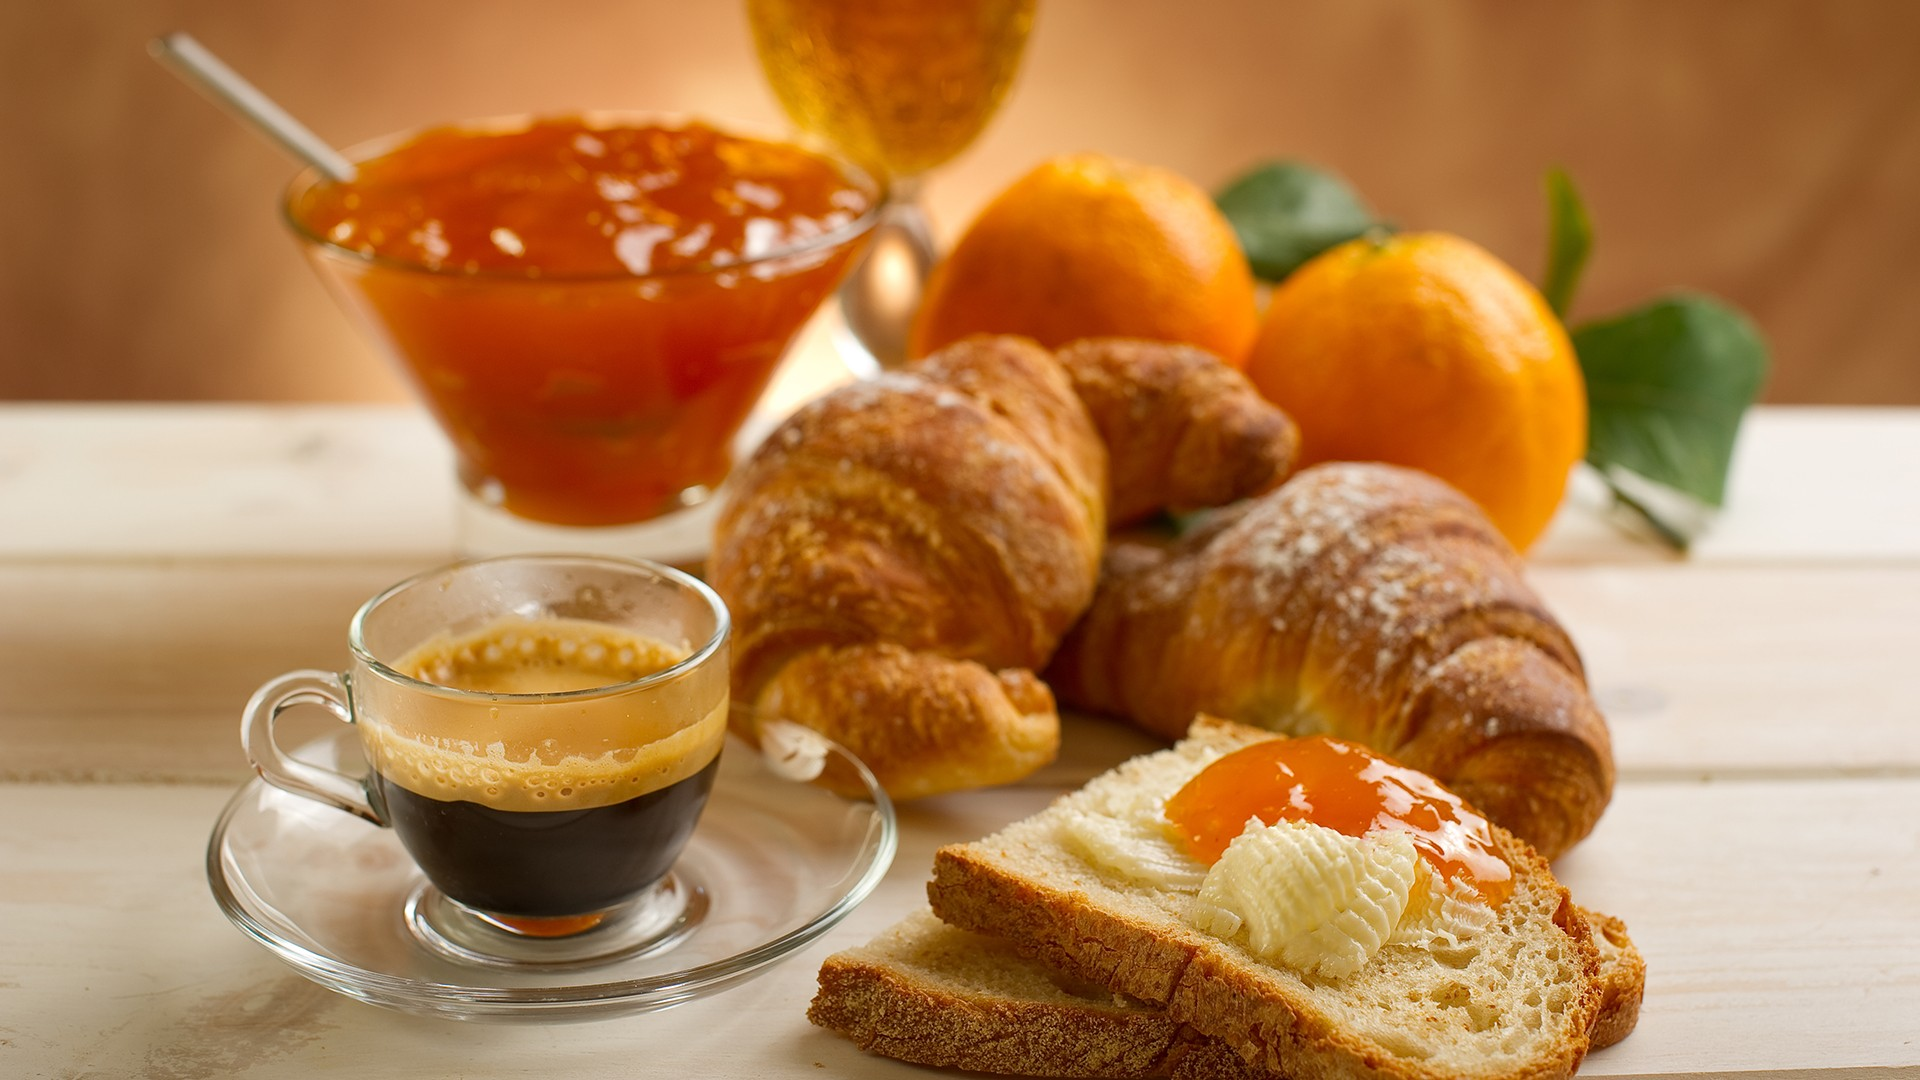 Sandwiches with apricot jam and coffee